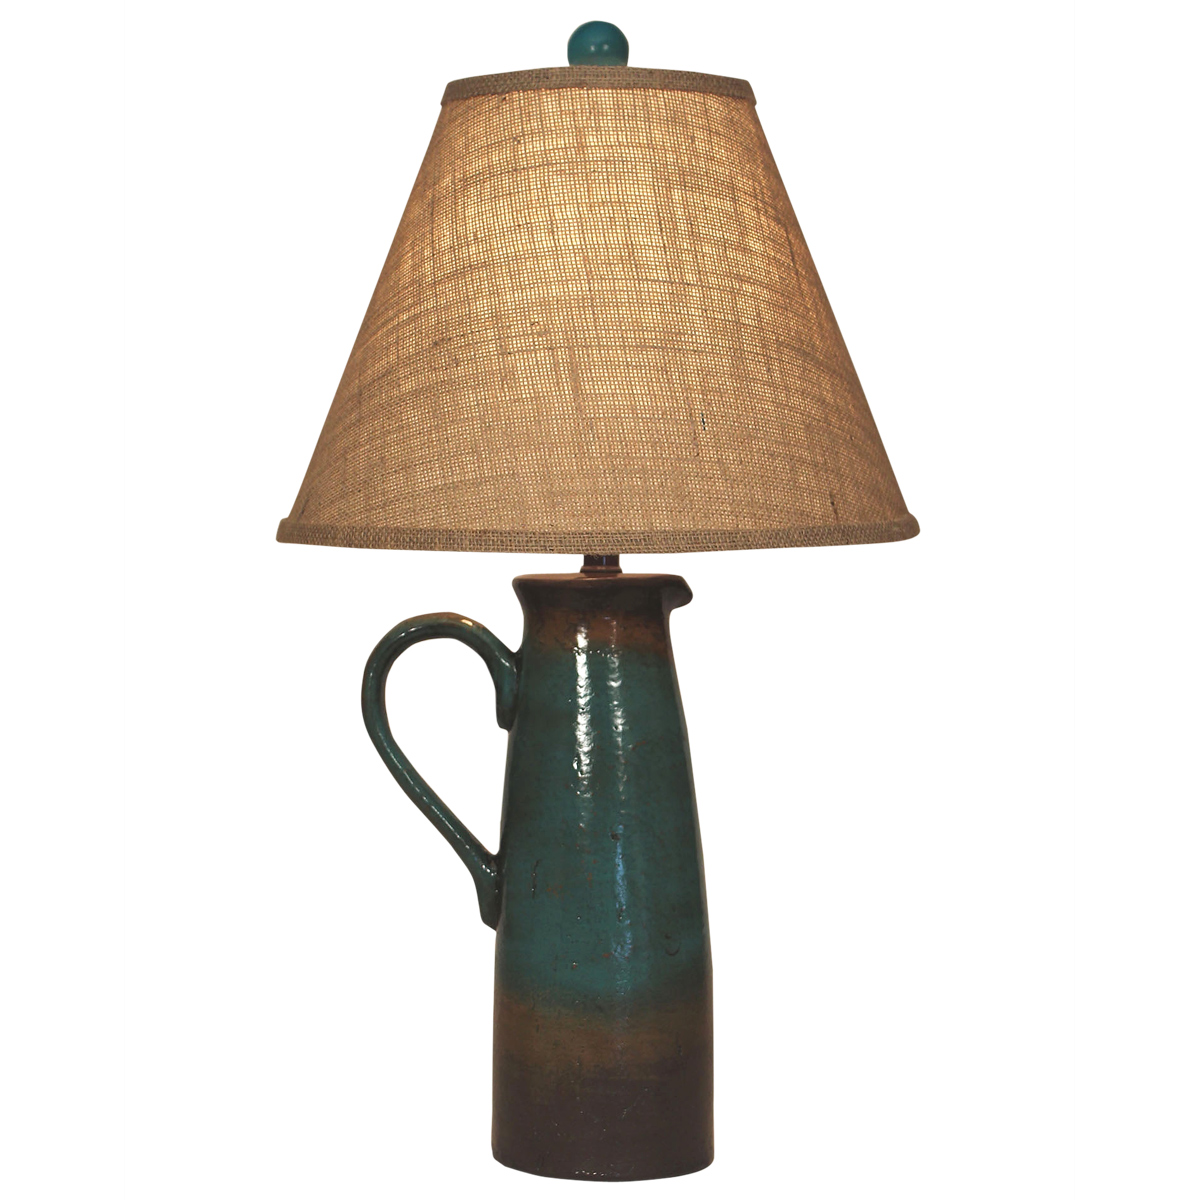 Harvest Handled Pitcher Table Lamp